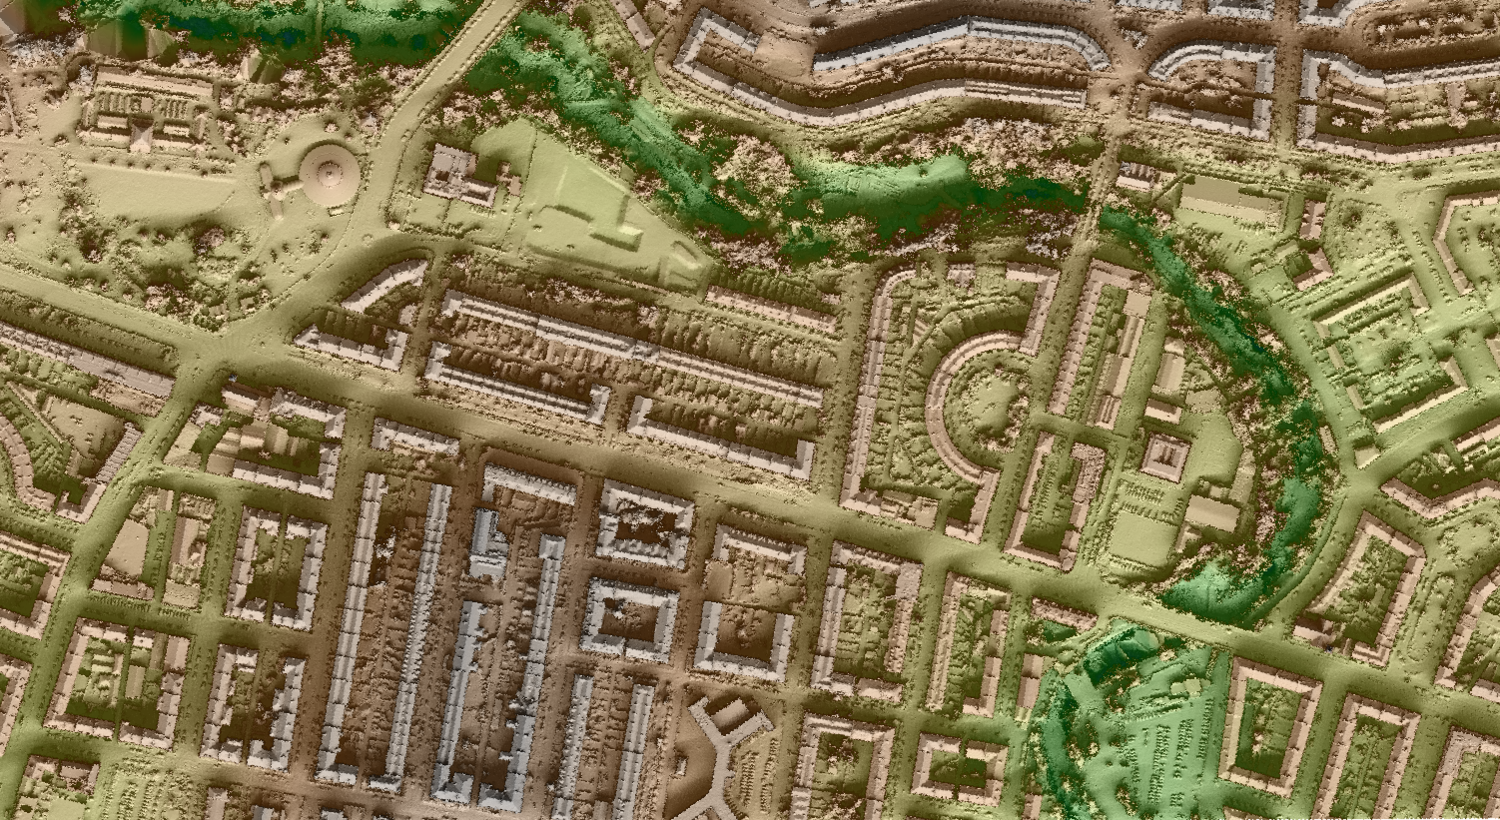 Kelvinside and Hillhead as you've never seen it before! Visualisation by Steven Kay (using SAGA and QGIS)